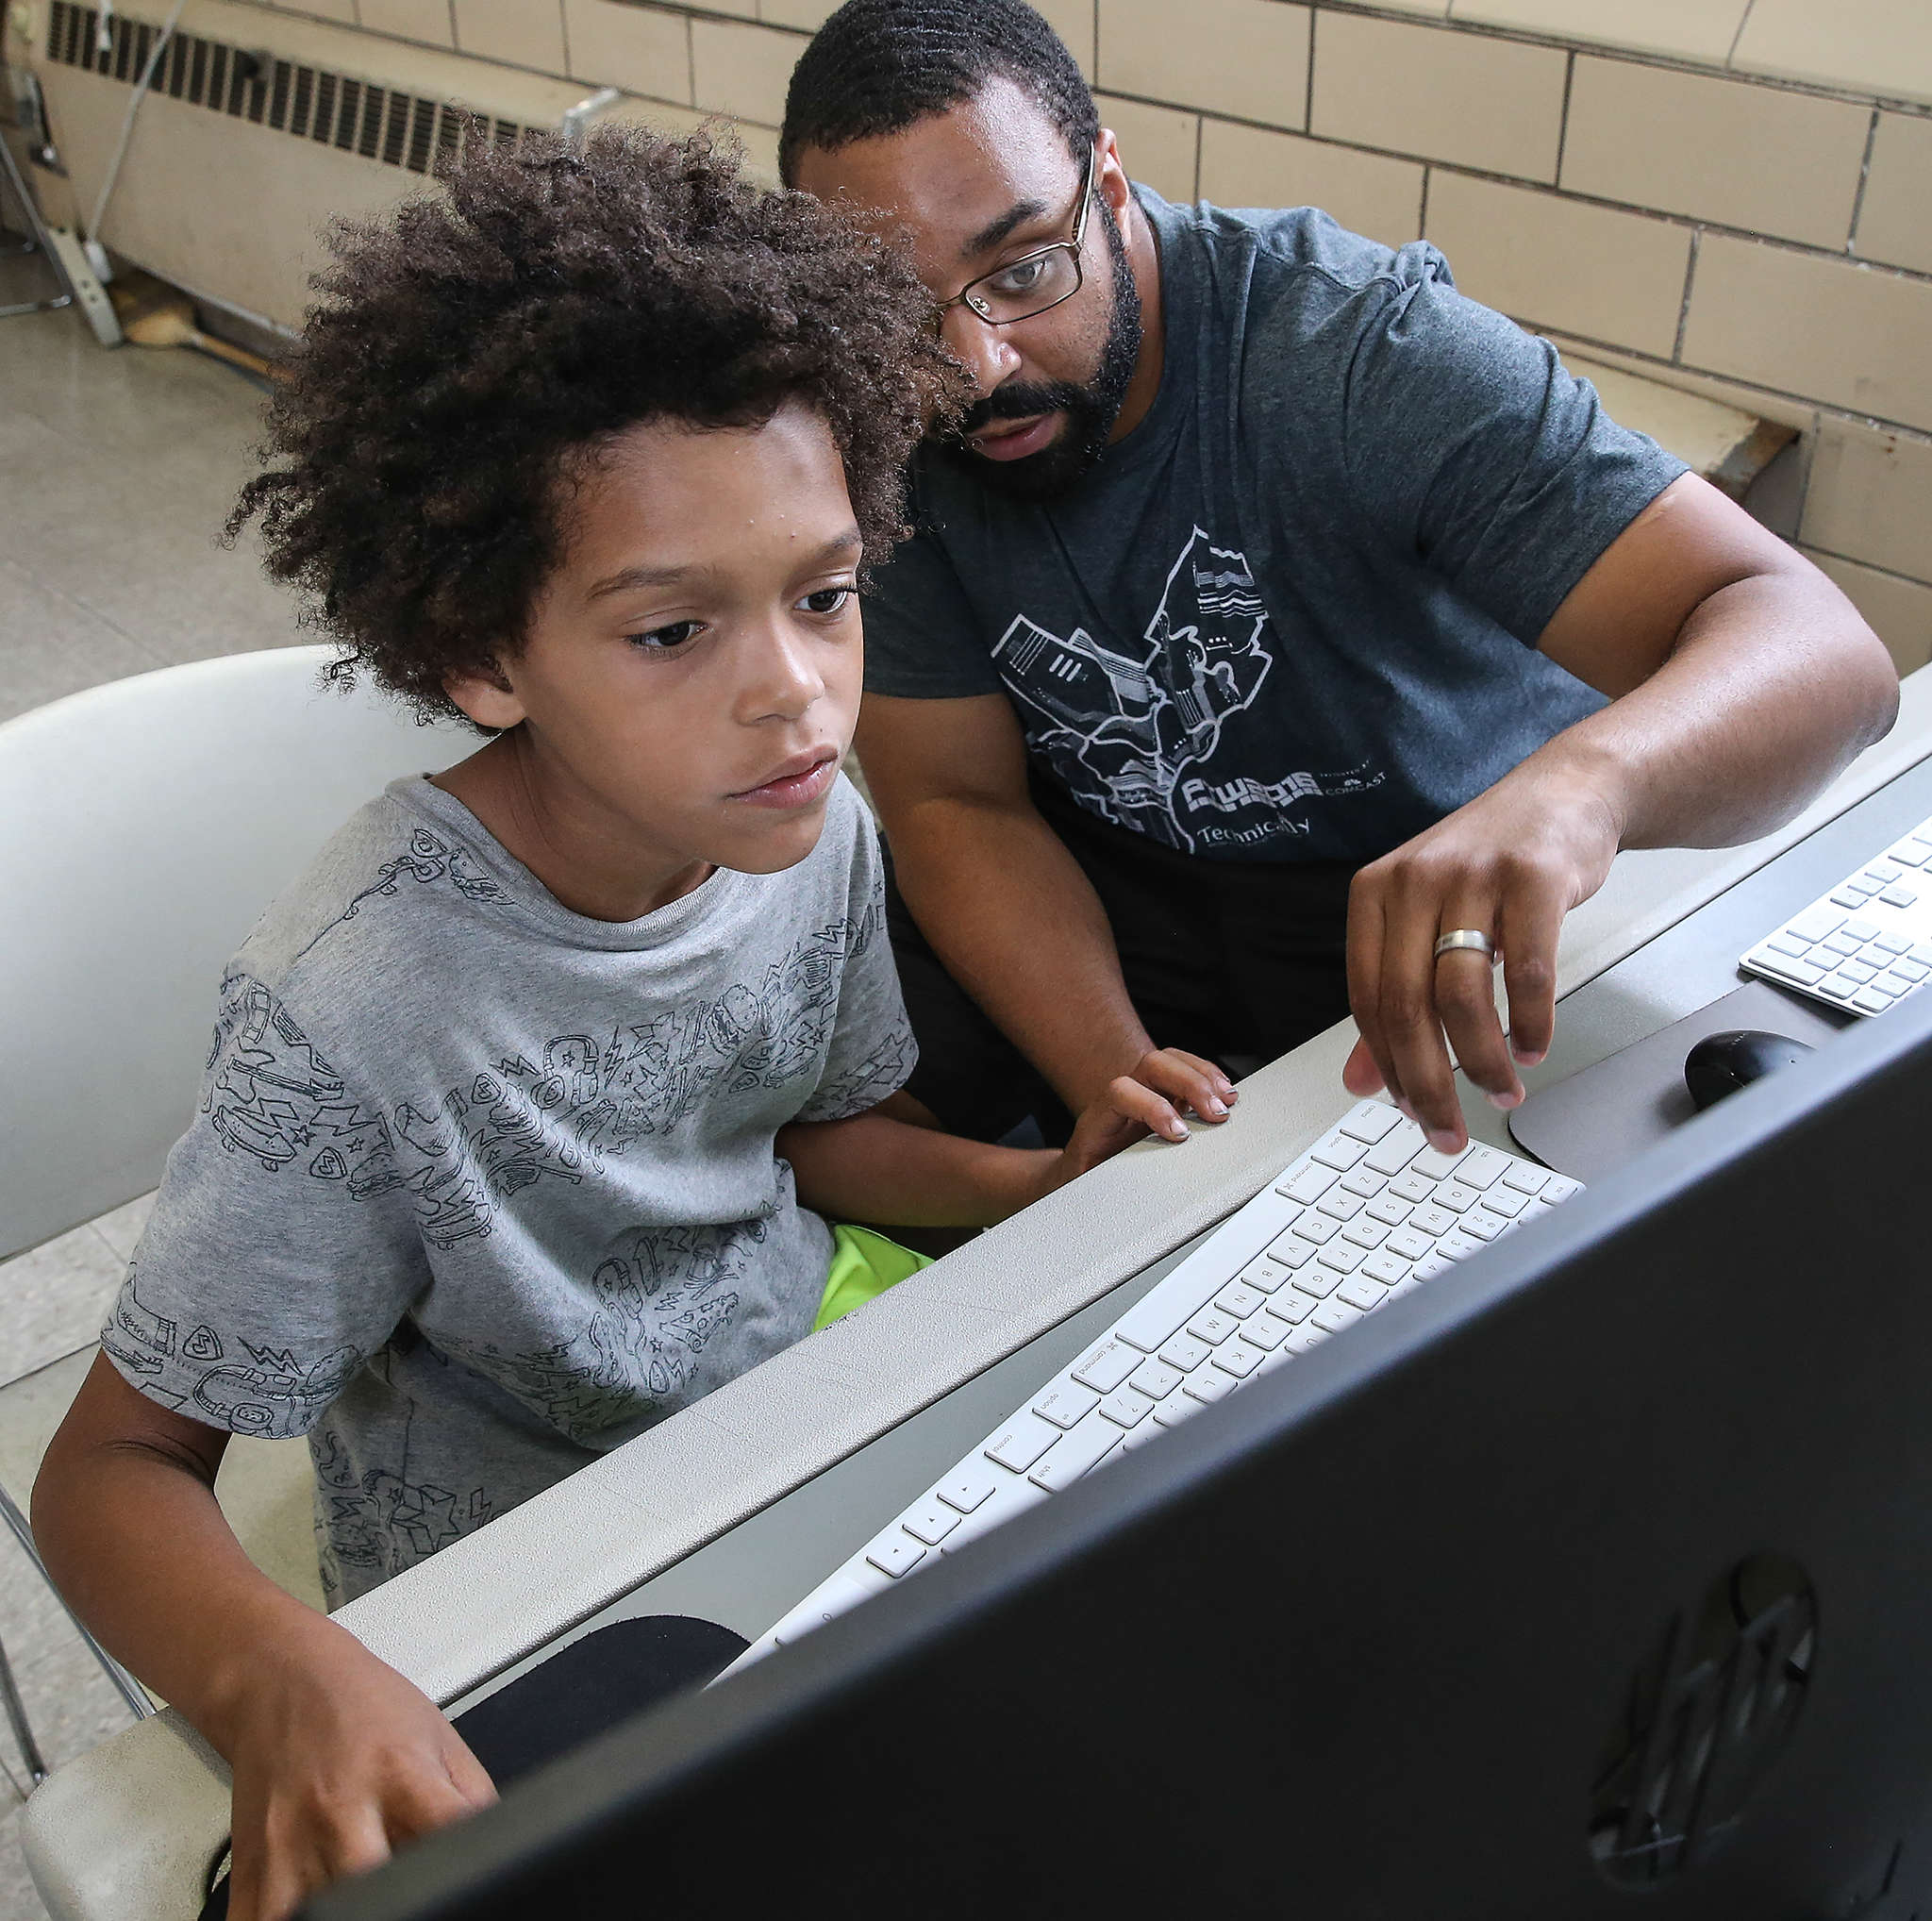 Sylvester Mobley works with Marlowe Whittenberg , 8, at a Coded by Kids workshop at the Marian Anderson Recreation Center. Coded by Kids is a nonprofit offering technology classes at city recreation centers for young people age 5 to 18. STEVEN M. FALK / Staff Photographer